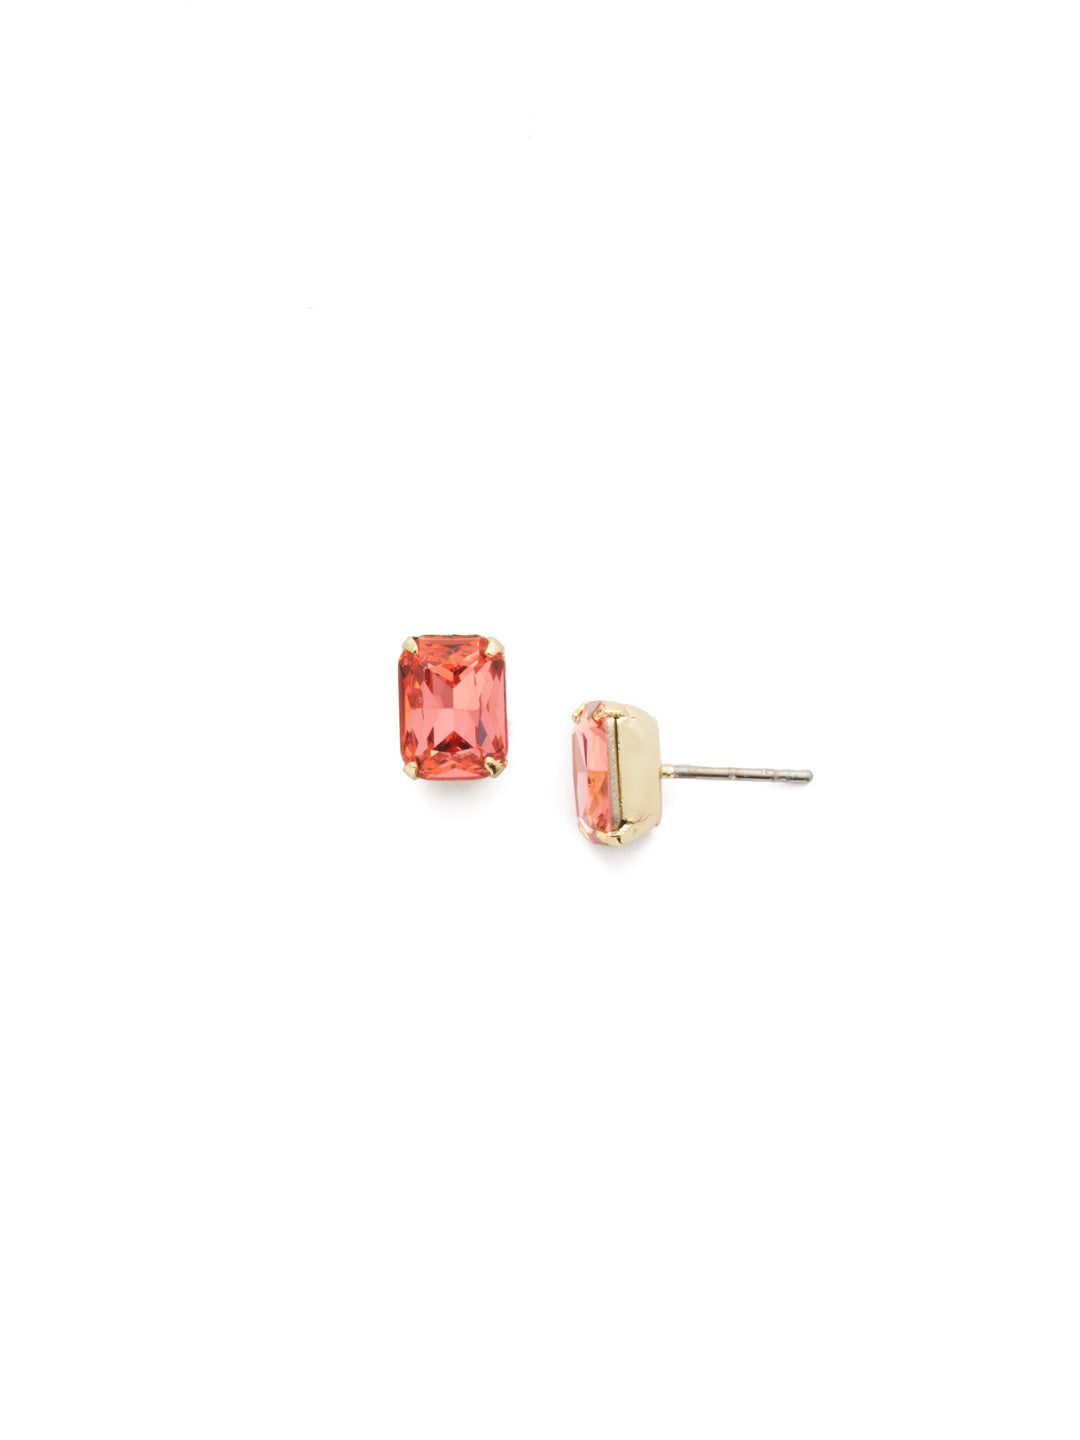 Mini Emerald Cut Stud Earring - Sorrelli Essentials - EBY42BGCRL